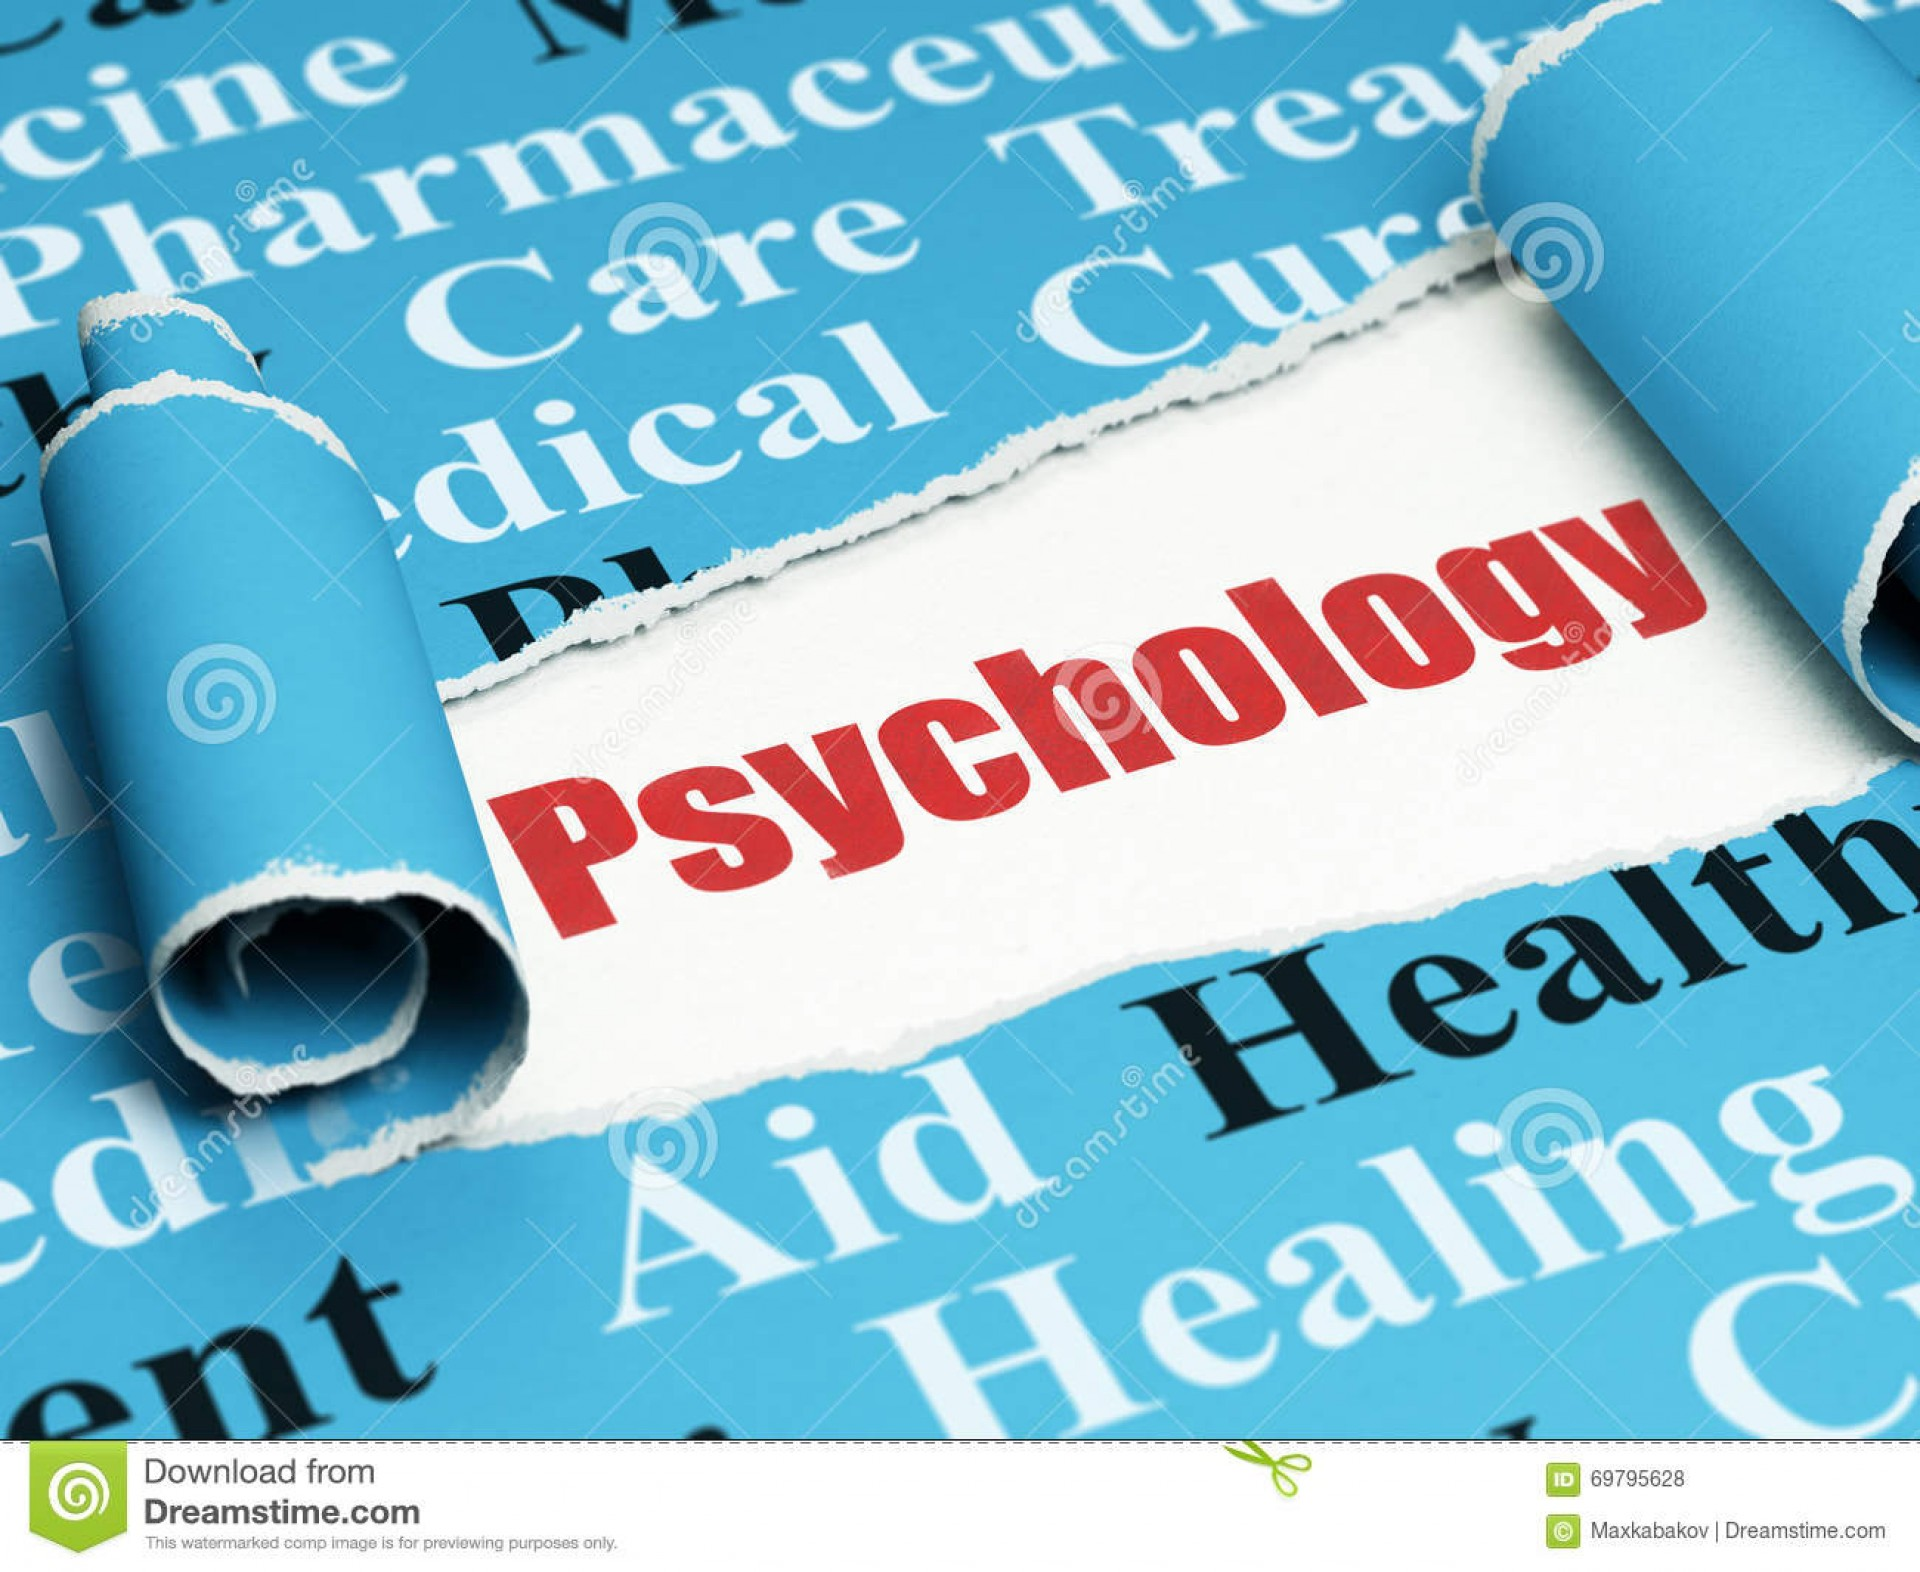 010 Research Paper Psychology On Dreams Health Concept Red Text Under Piece Torn Curled Blue Tag Cloud Rendering Singular Articles Topics 1920